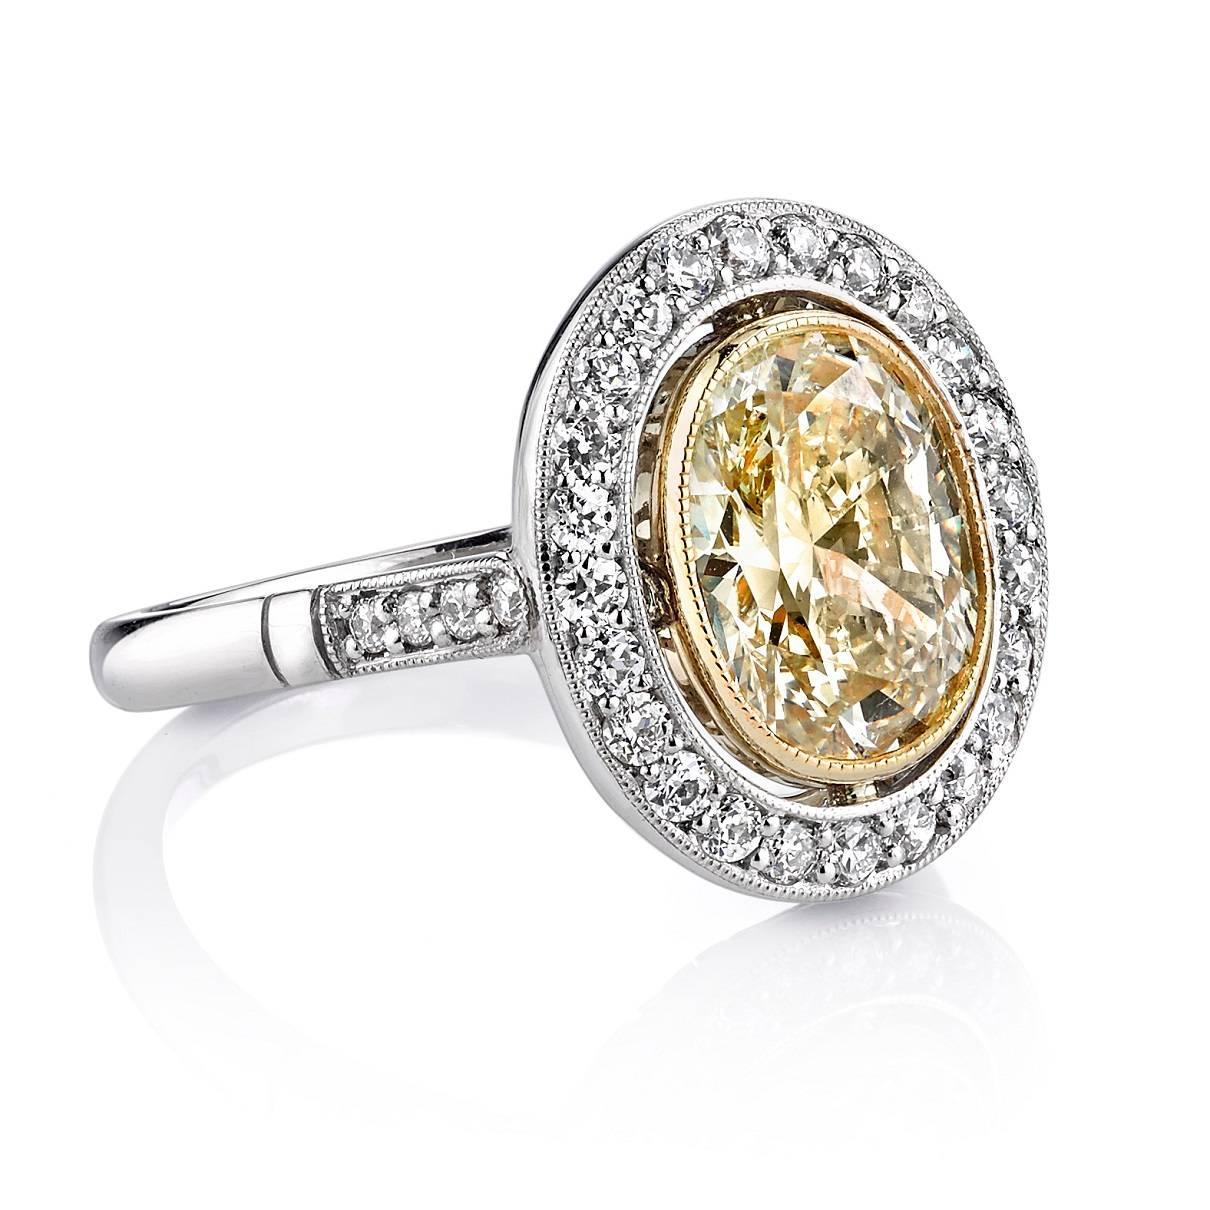 2 04 carat oval gold platinum engagement ring at